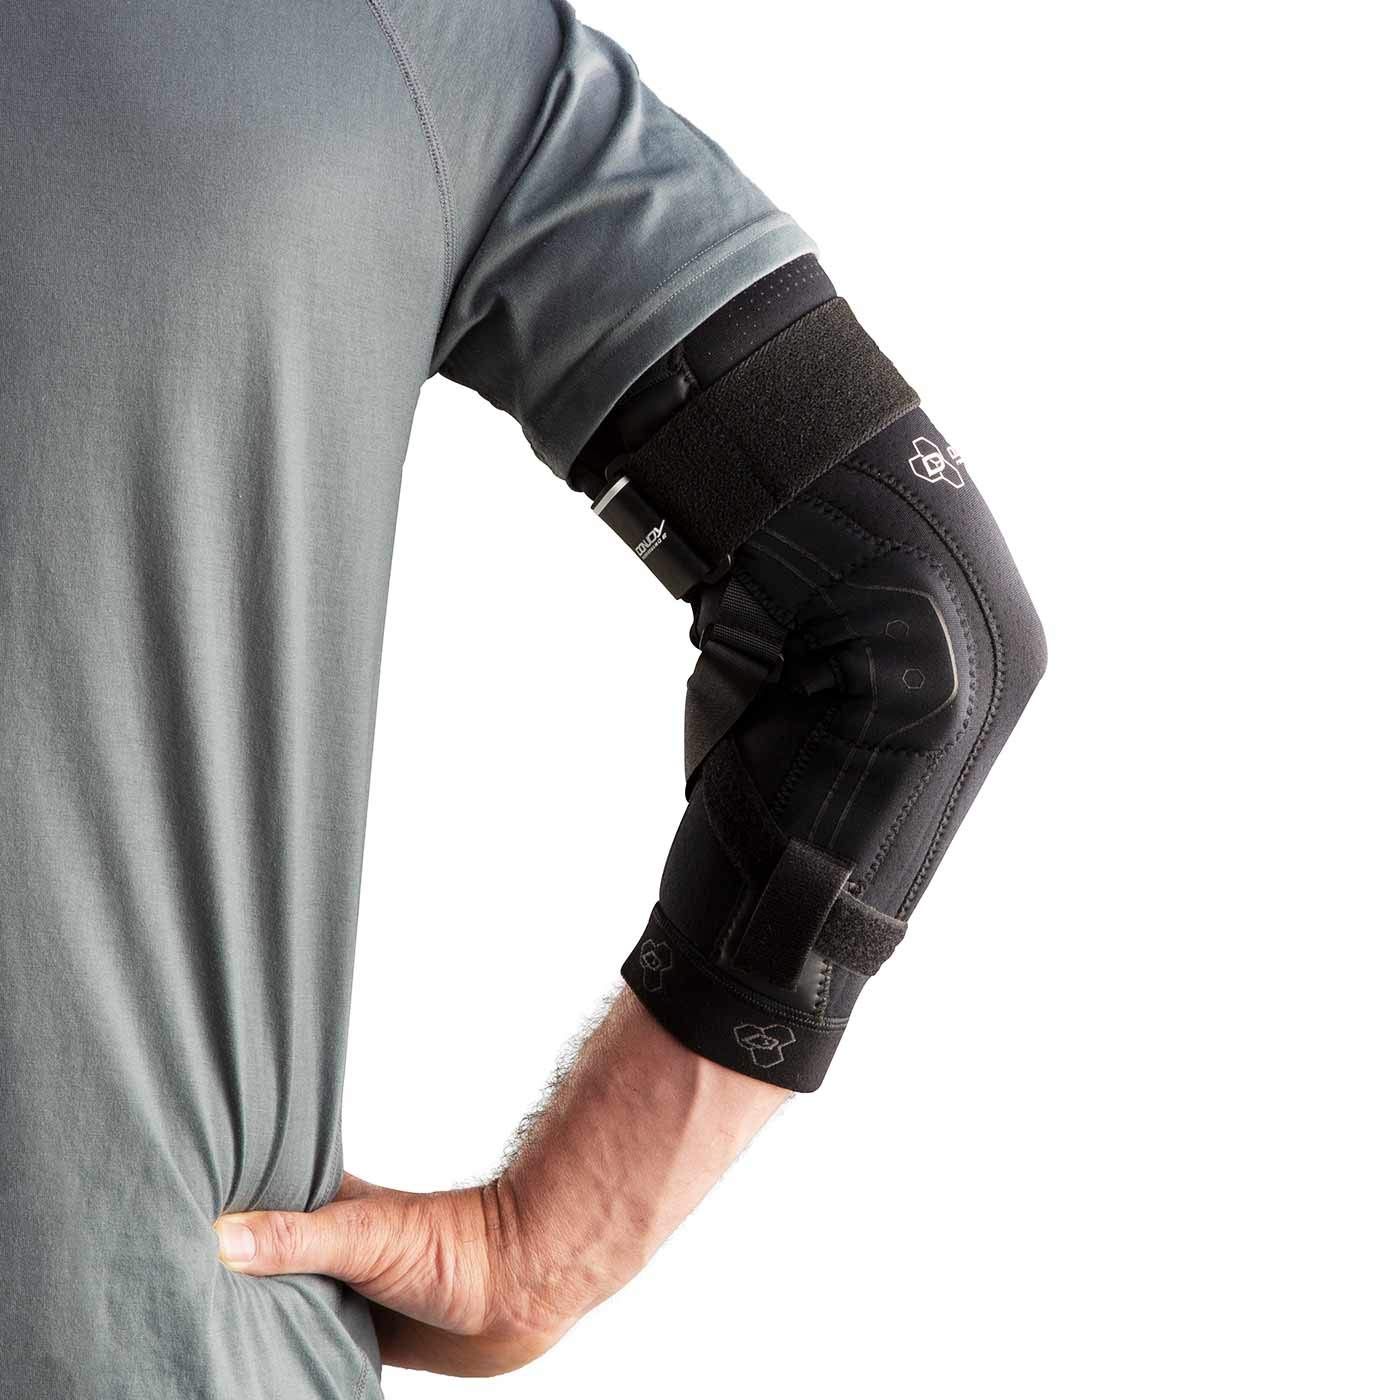 DonJoy Performance Bionic II Elbow Support Brace - New Upgraded Model - (Large) by DonJoy Performance (Image #3)